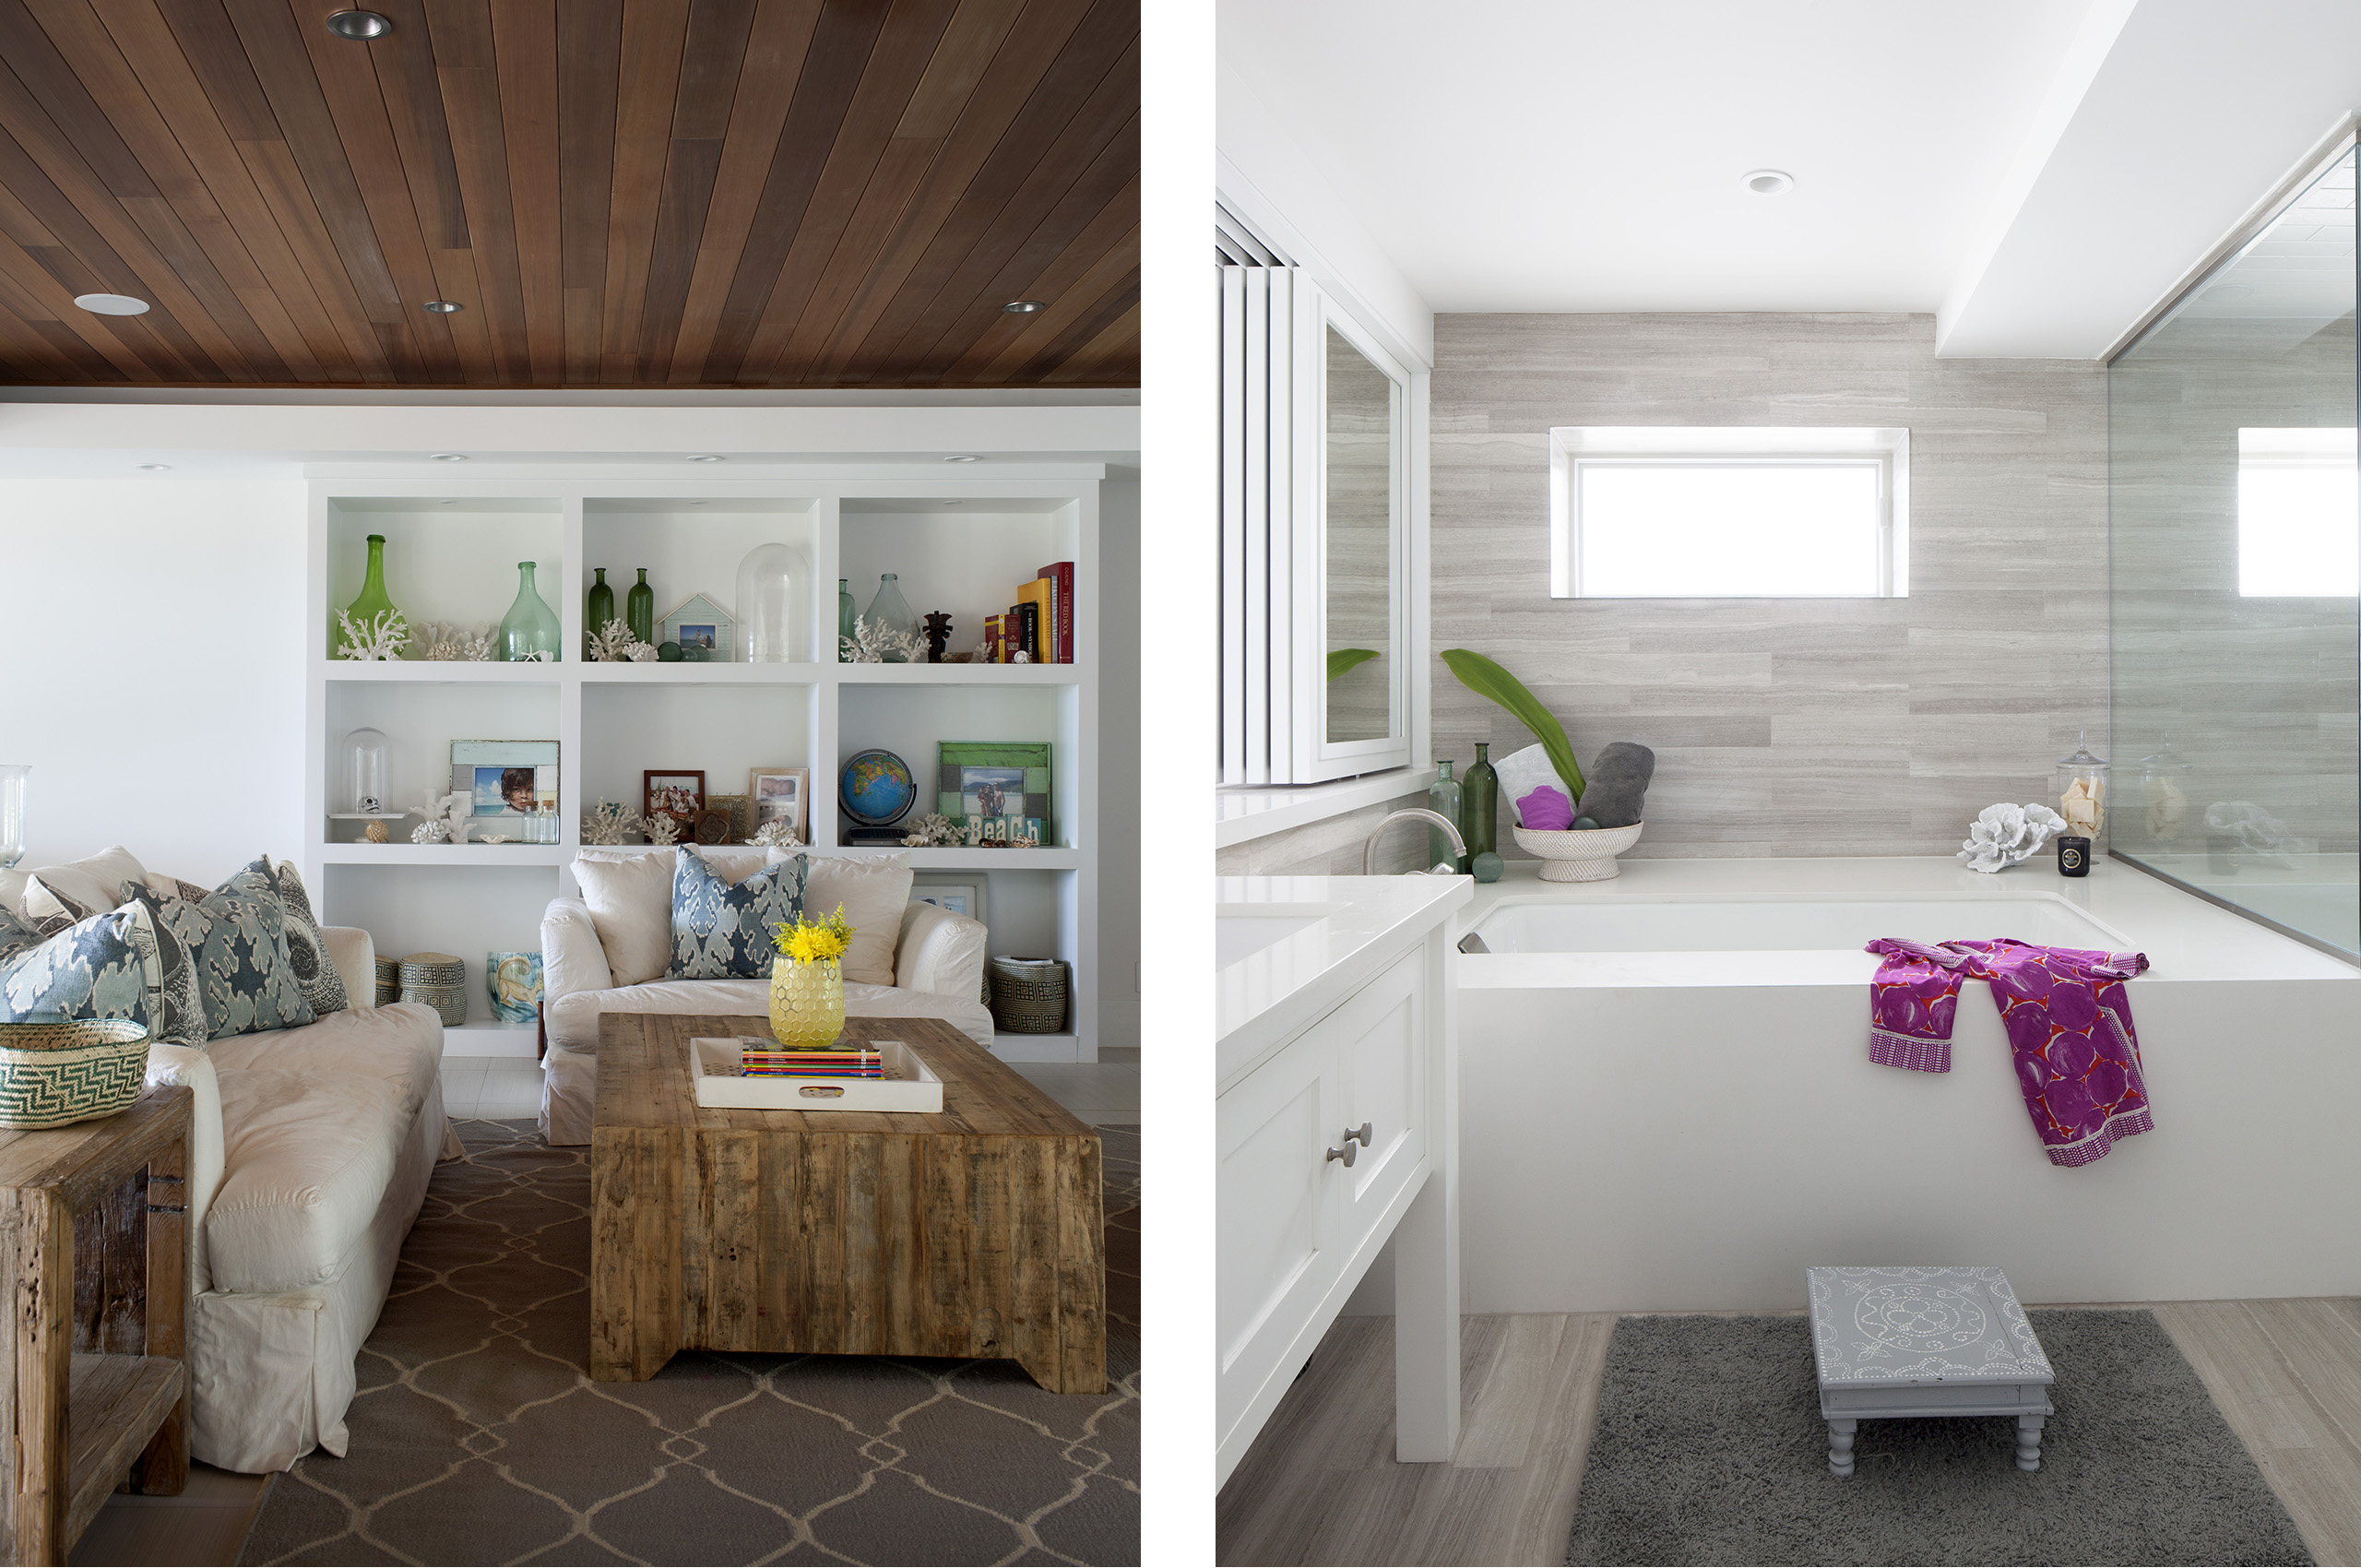 Hawaii Architectural Photography - Architectural Photographer ...